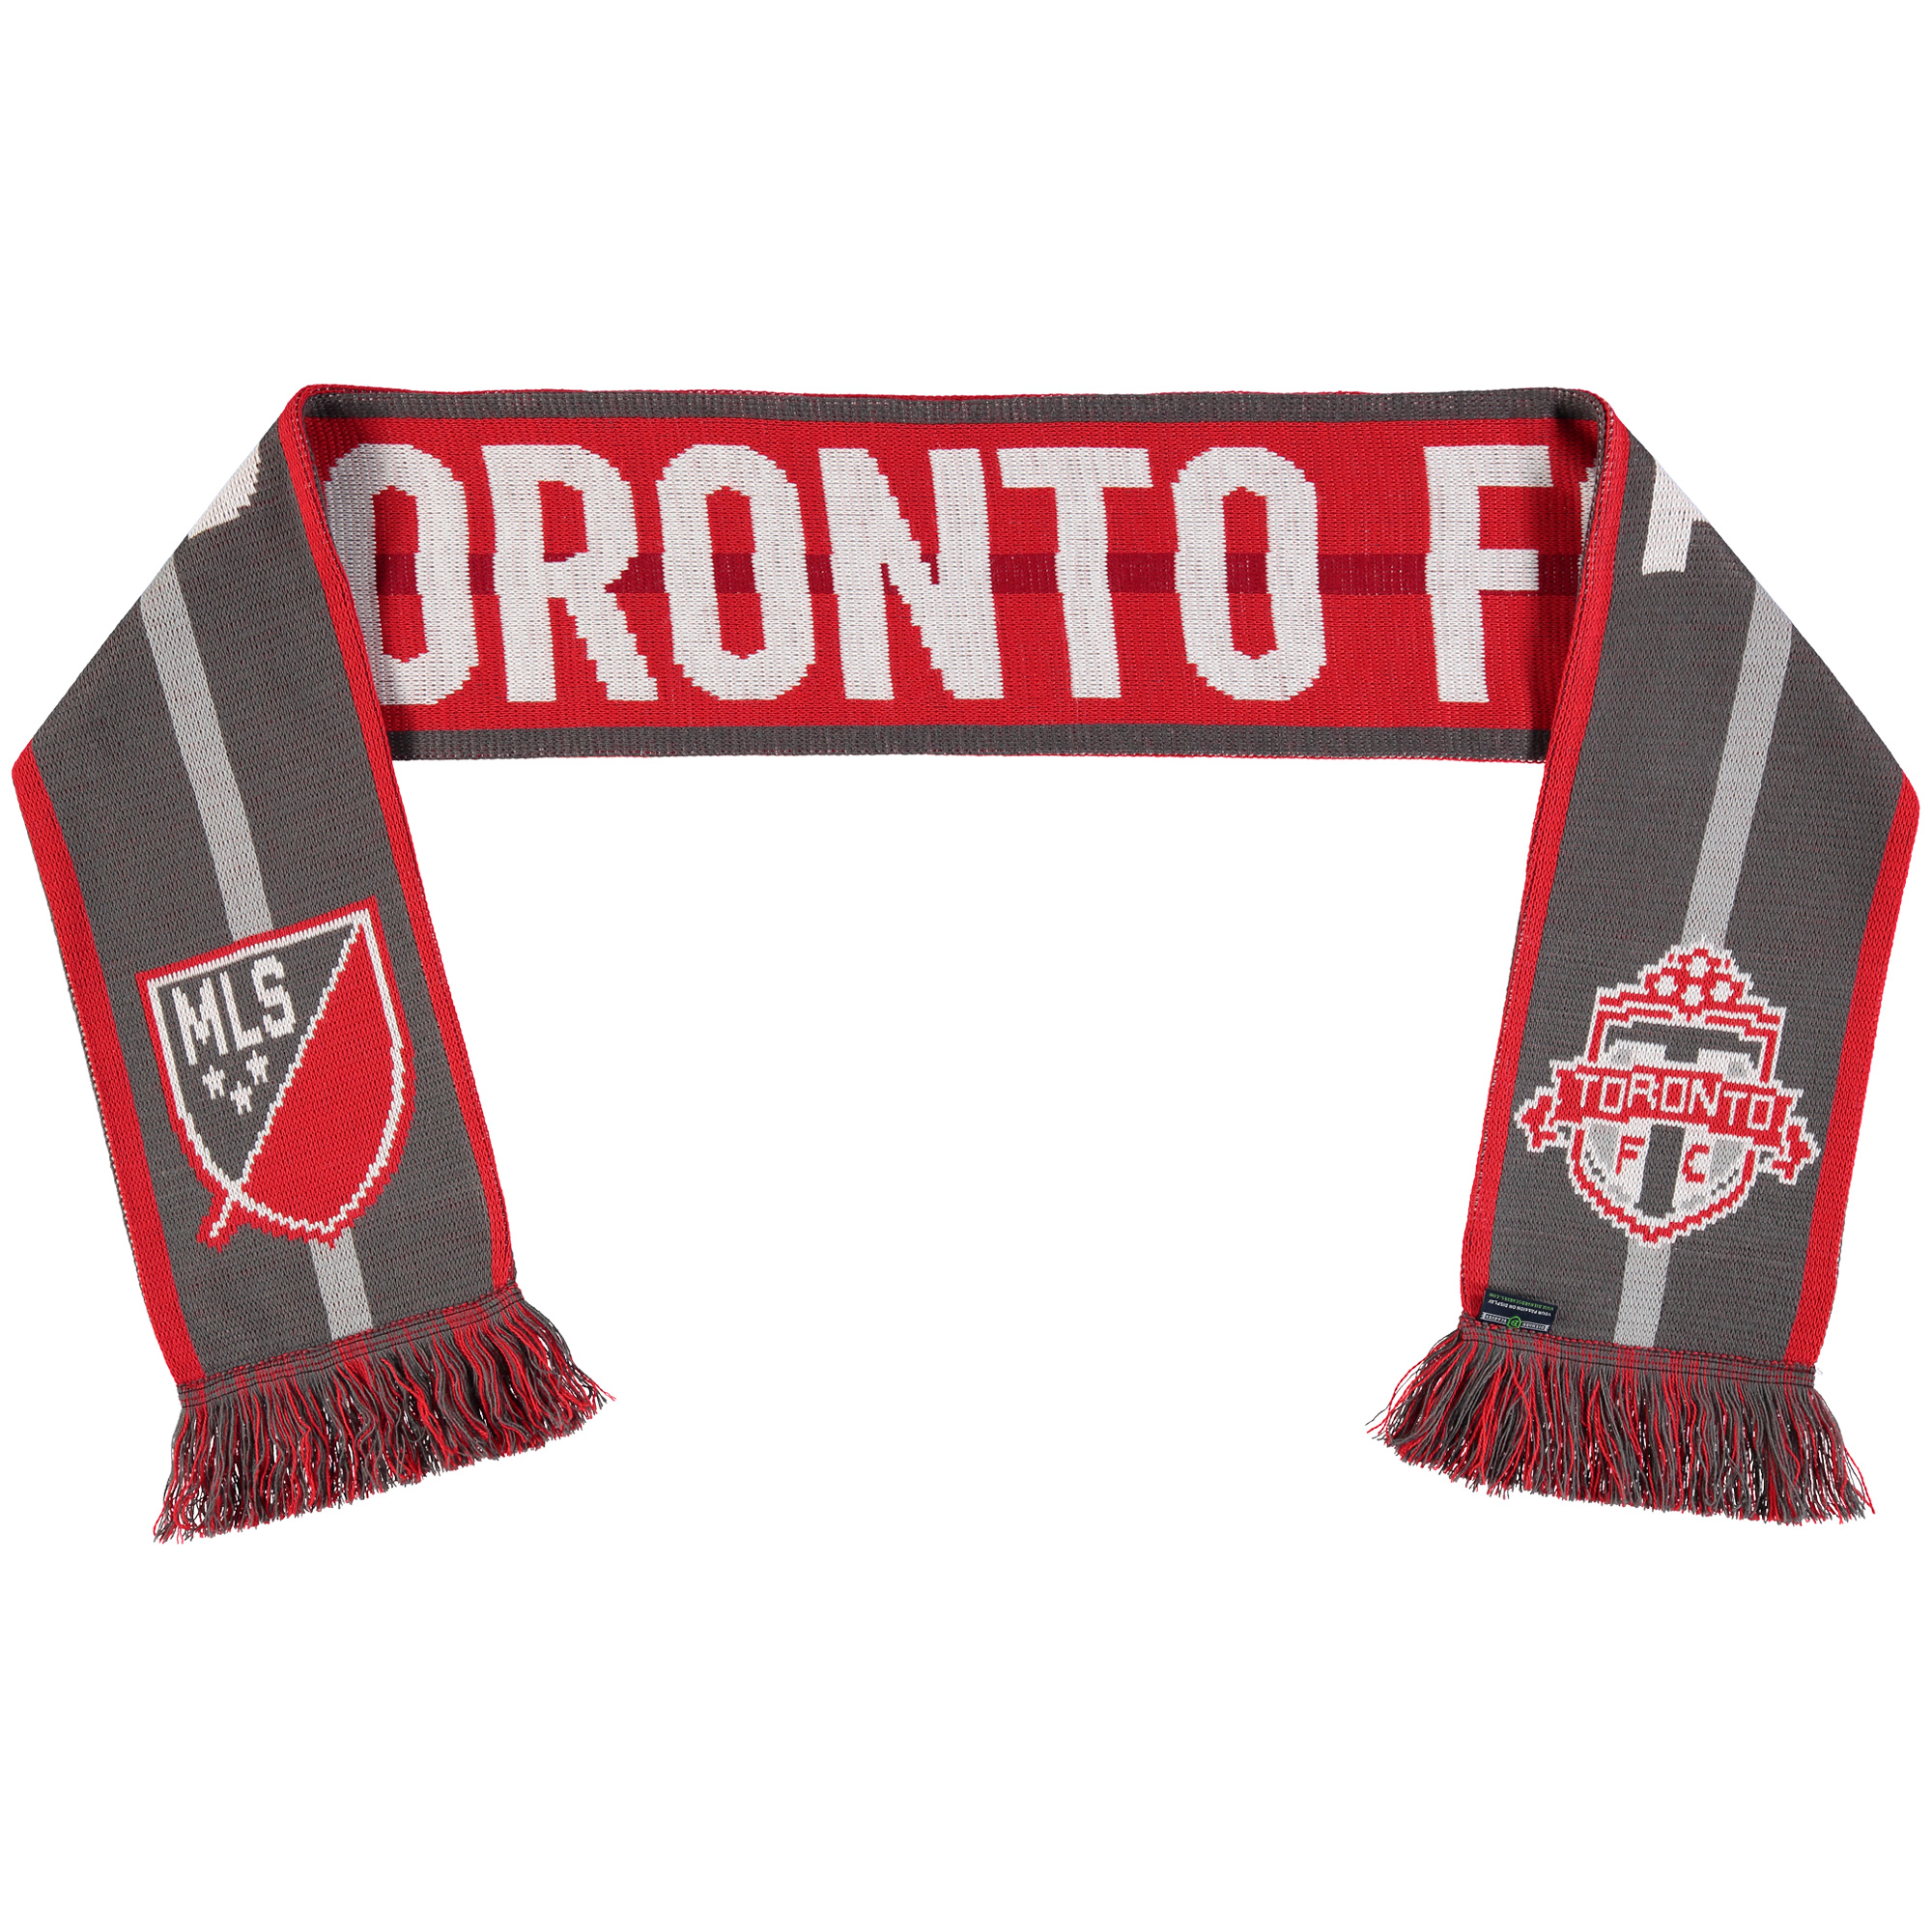 Toronto FC Team Pride Scarf - Red/Gray - No Size